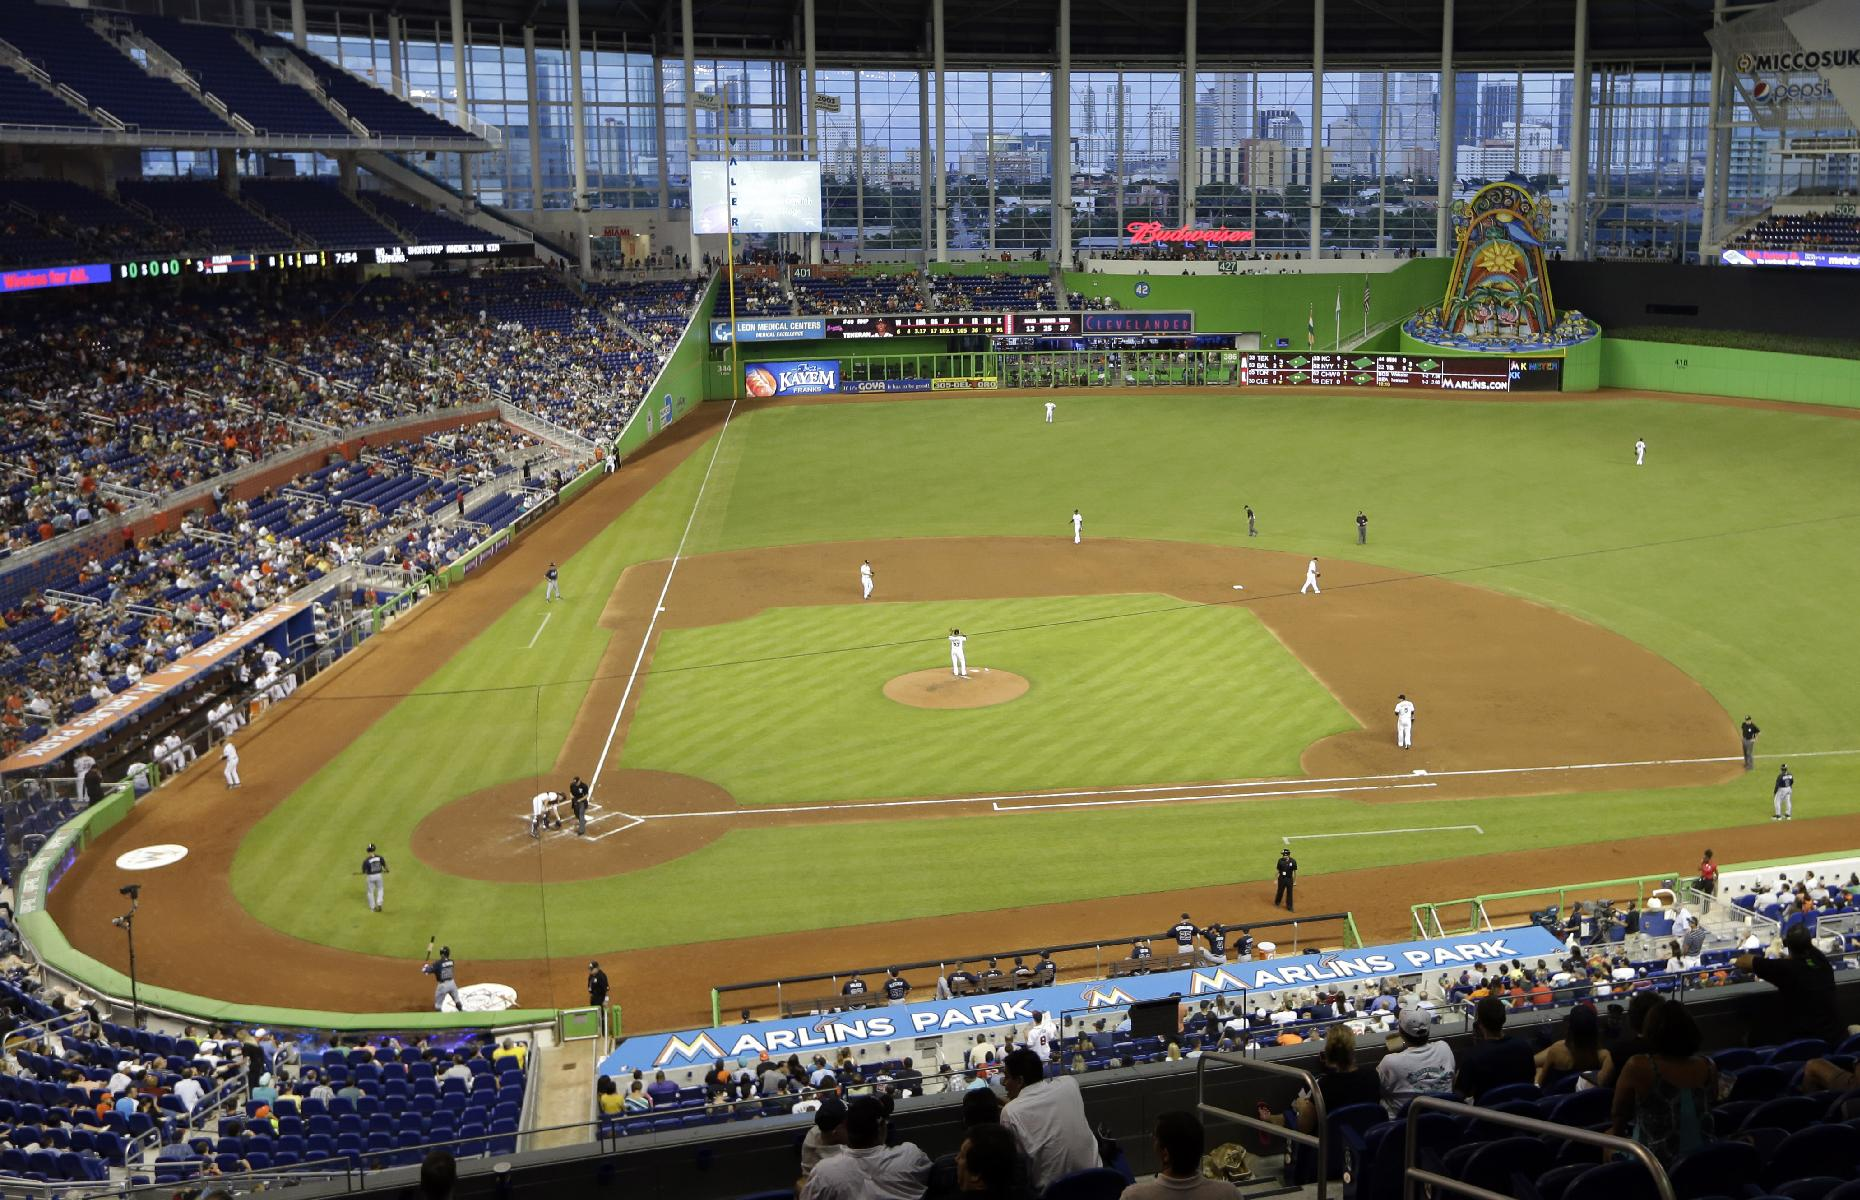 The Miami Marlins and Atlanta Braves play a baseball game at Marlins Park,Tuesday, July 9, 2013 in Miami. Hitters grouse that homers are tough to come by at Marlins Park. Through Monday, the Marlins ranked last in the majors with 53 homers, but they had a respectable 36 on the road, with only 17 at home